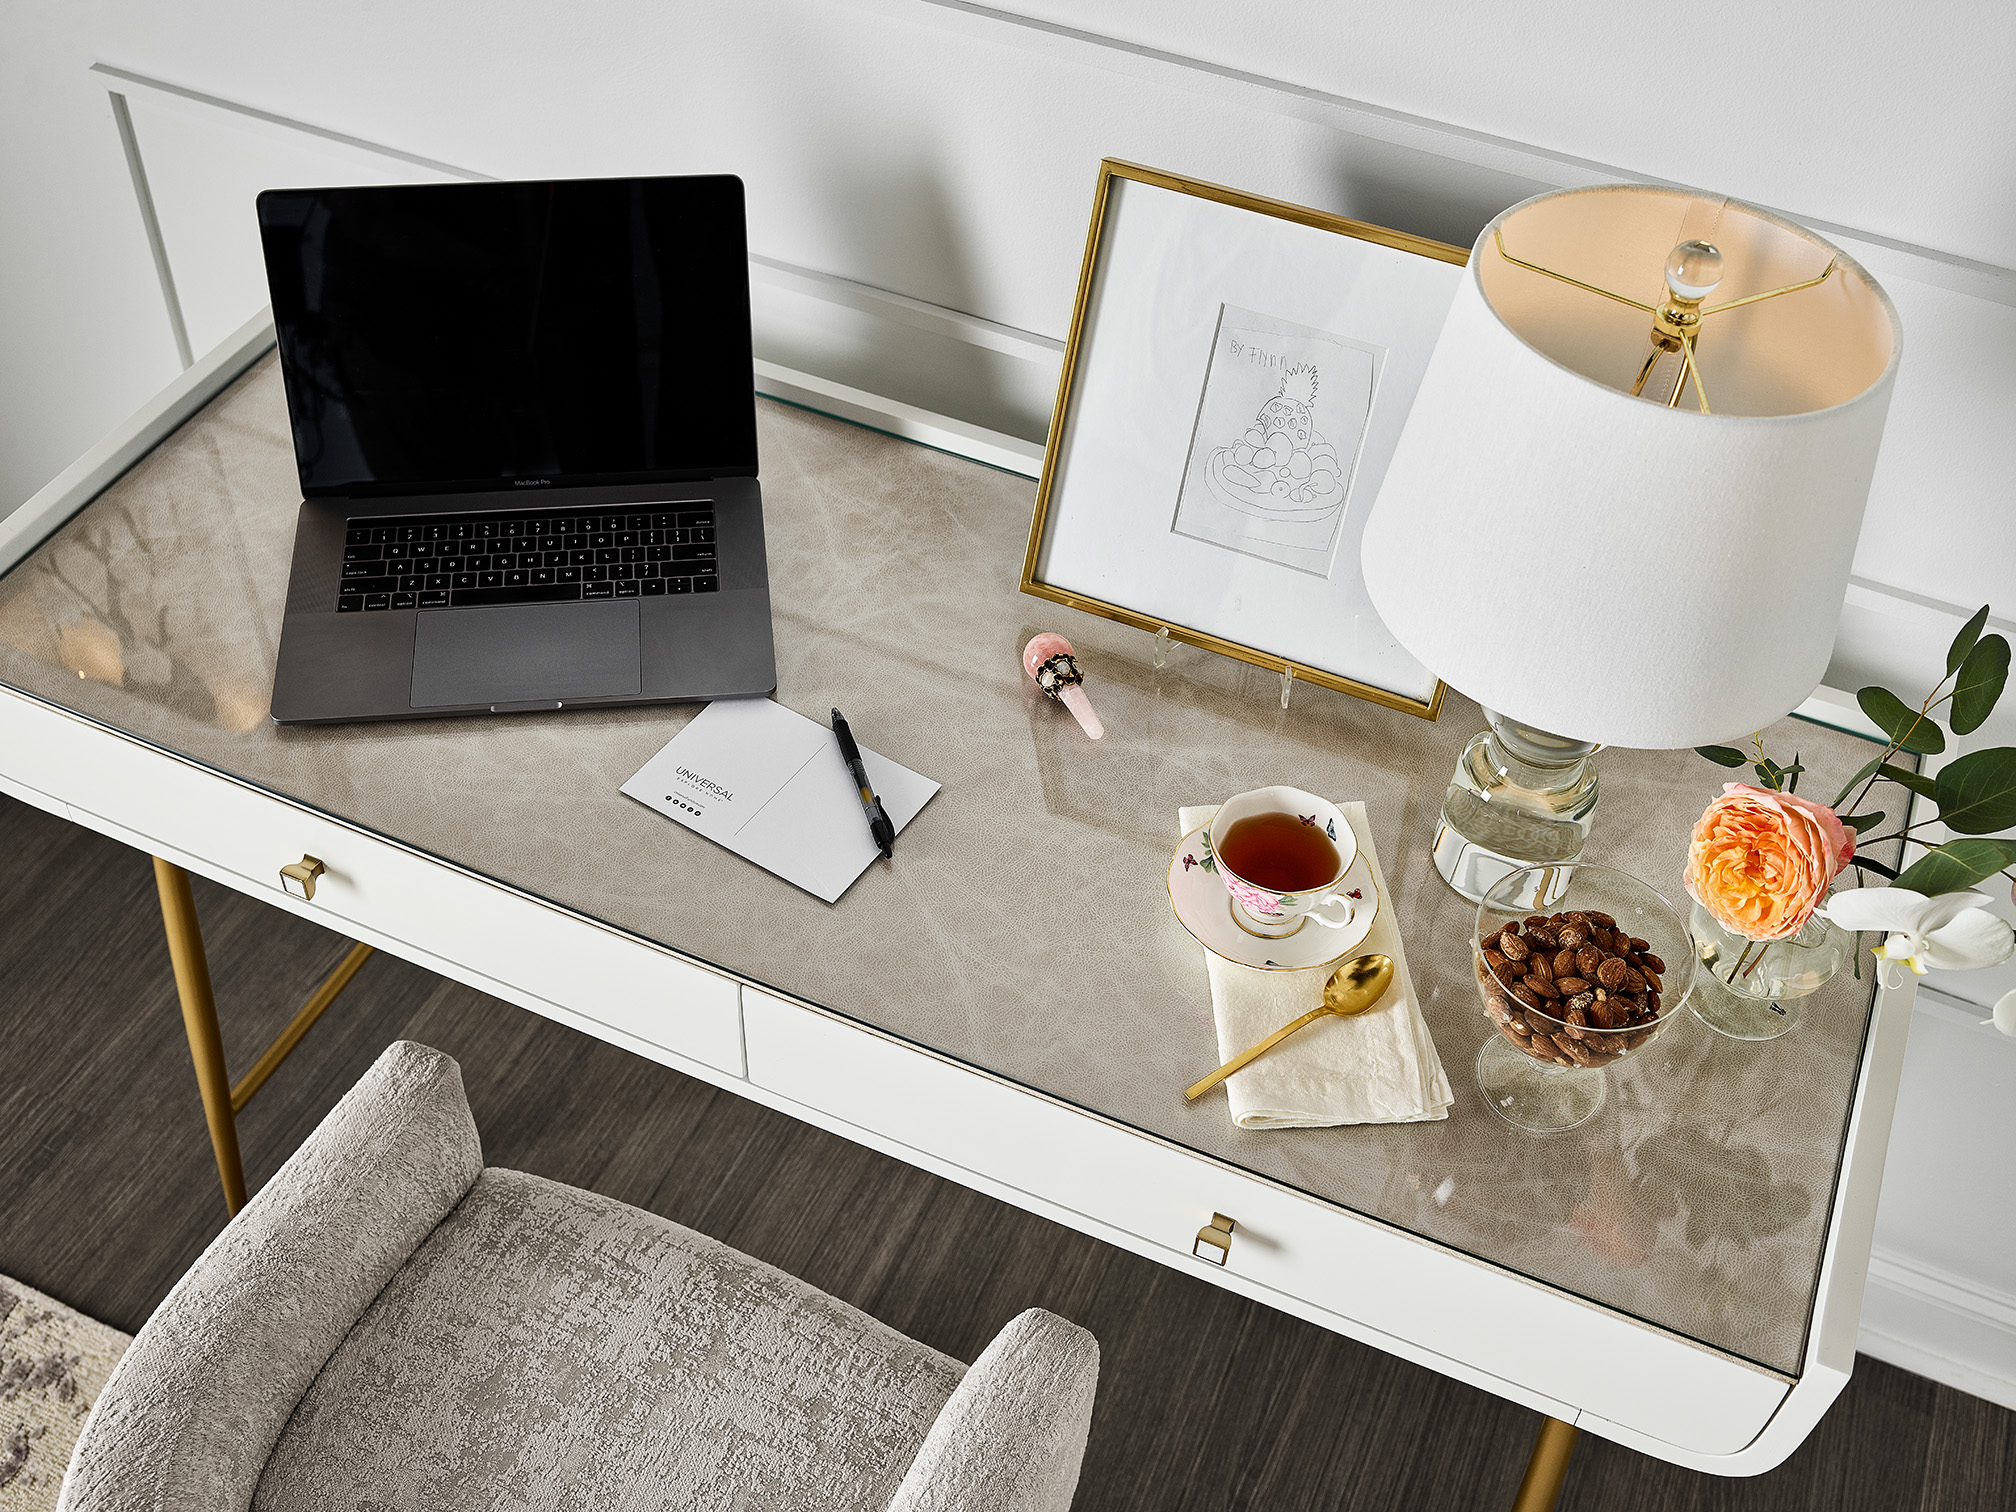 Image of a desk from the Miranda Kerr Home collection